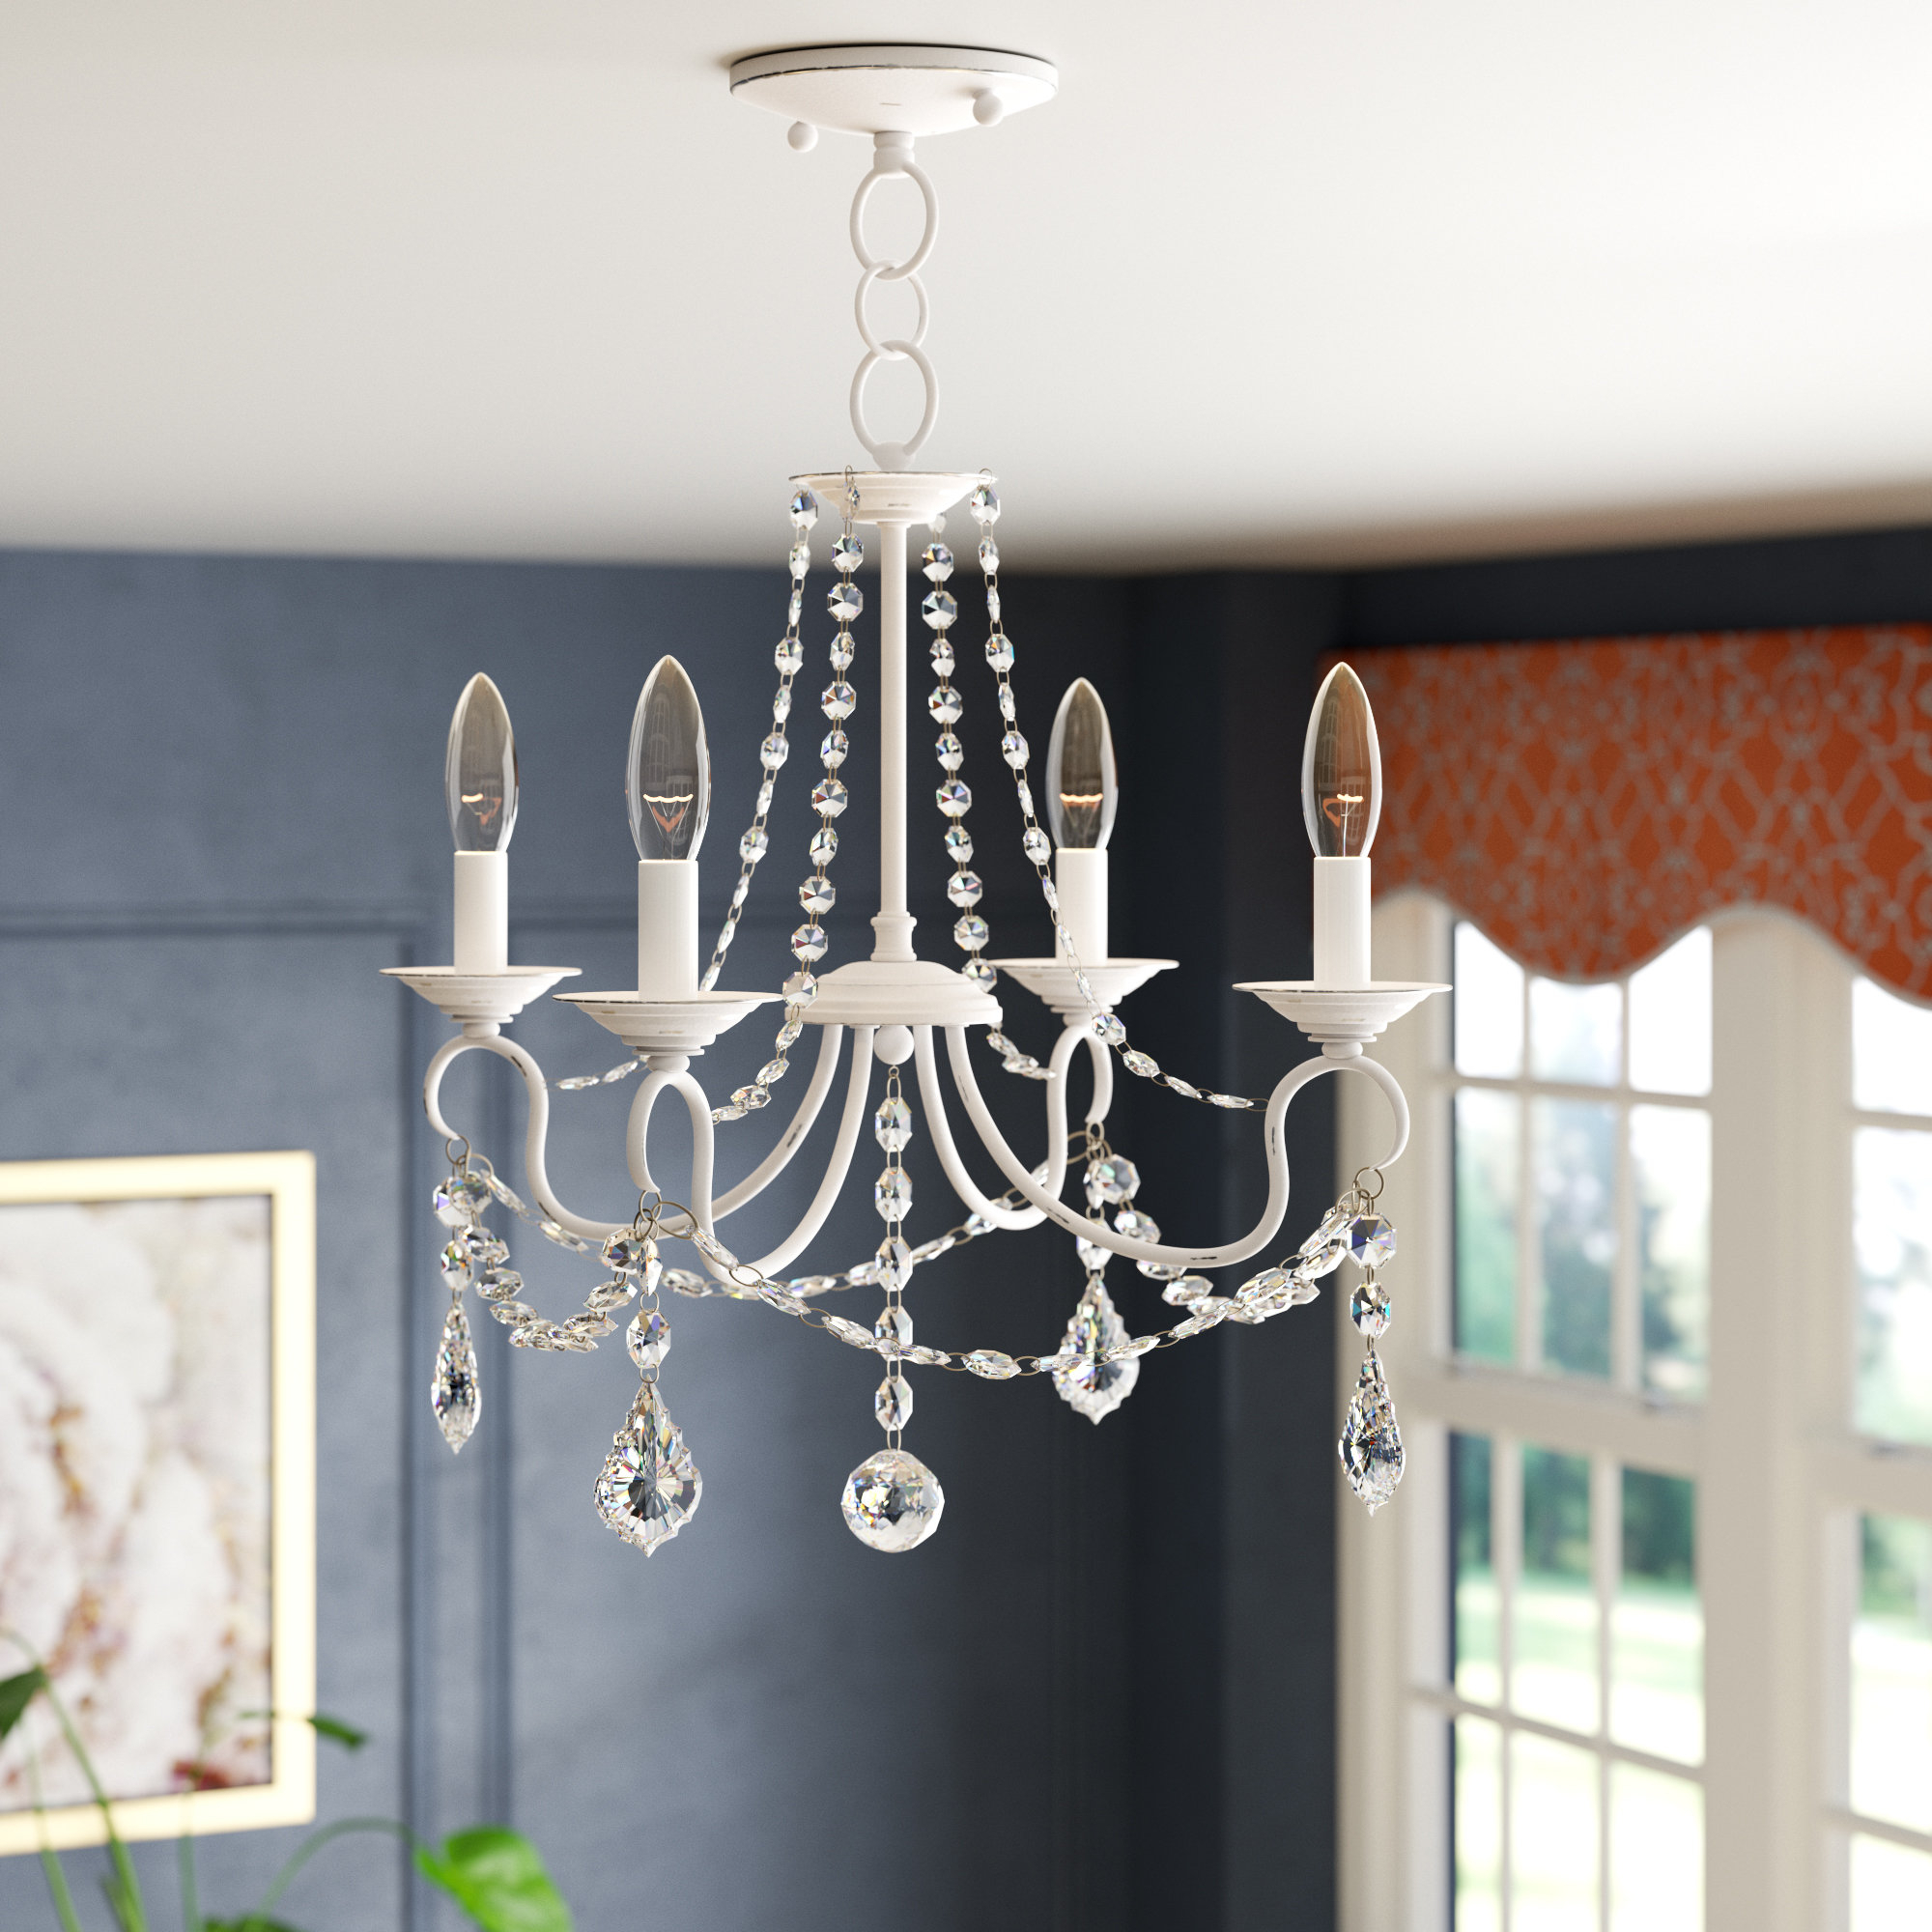 Most Popular Devana 4 Light Candle Style Chandelier Inside Aldora 4 Light Candle Style Chandeliers (View 6 of 25)